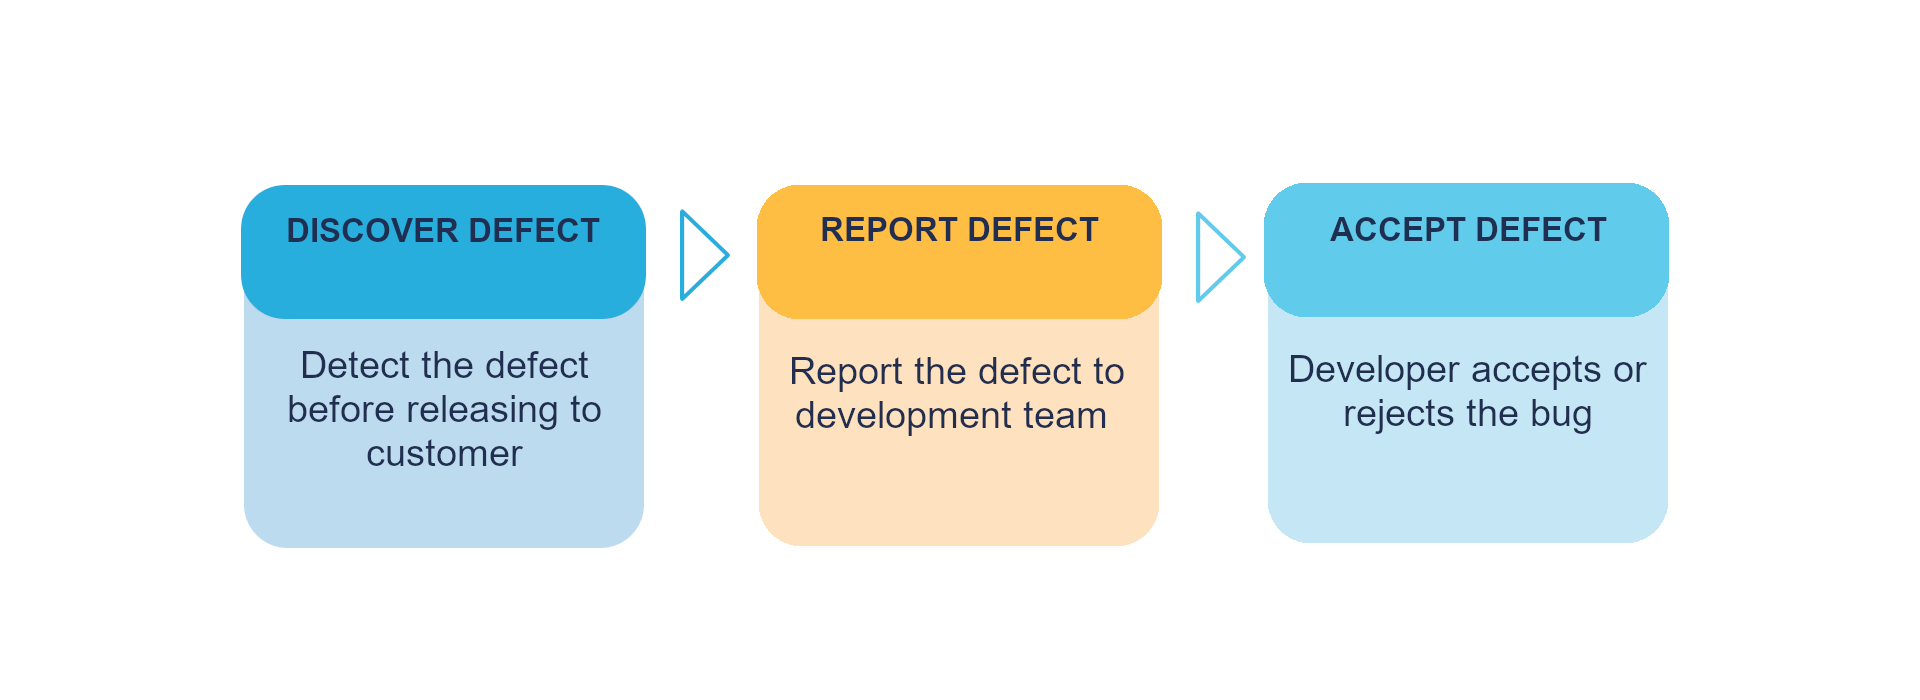 The graphic presents invalid process of reporting bugs between departments